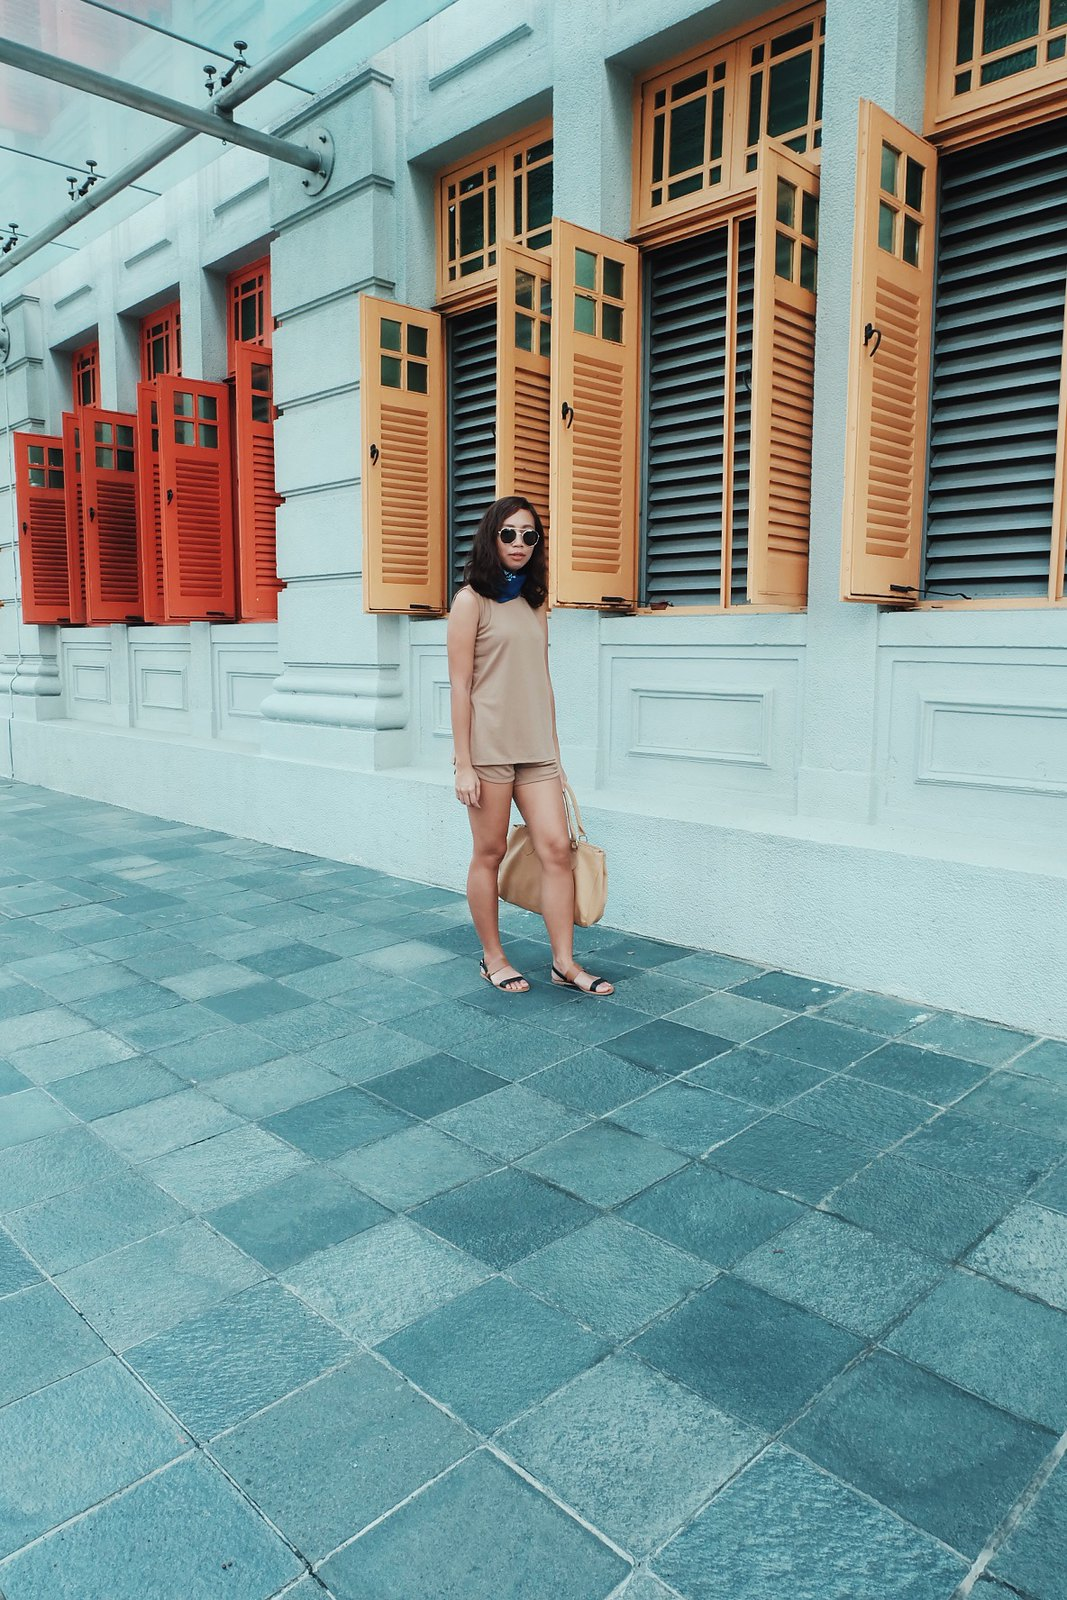 sunnies and style travels to singapore 2016